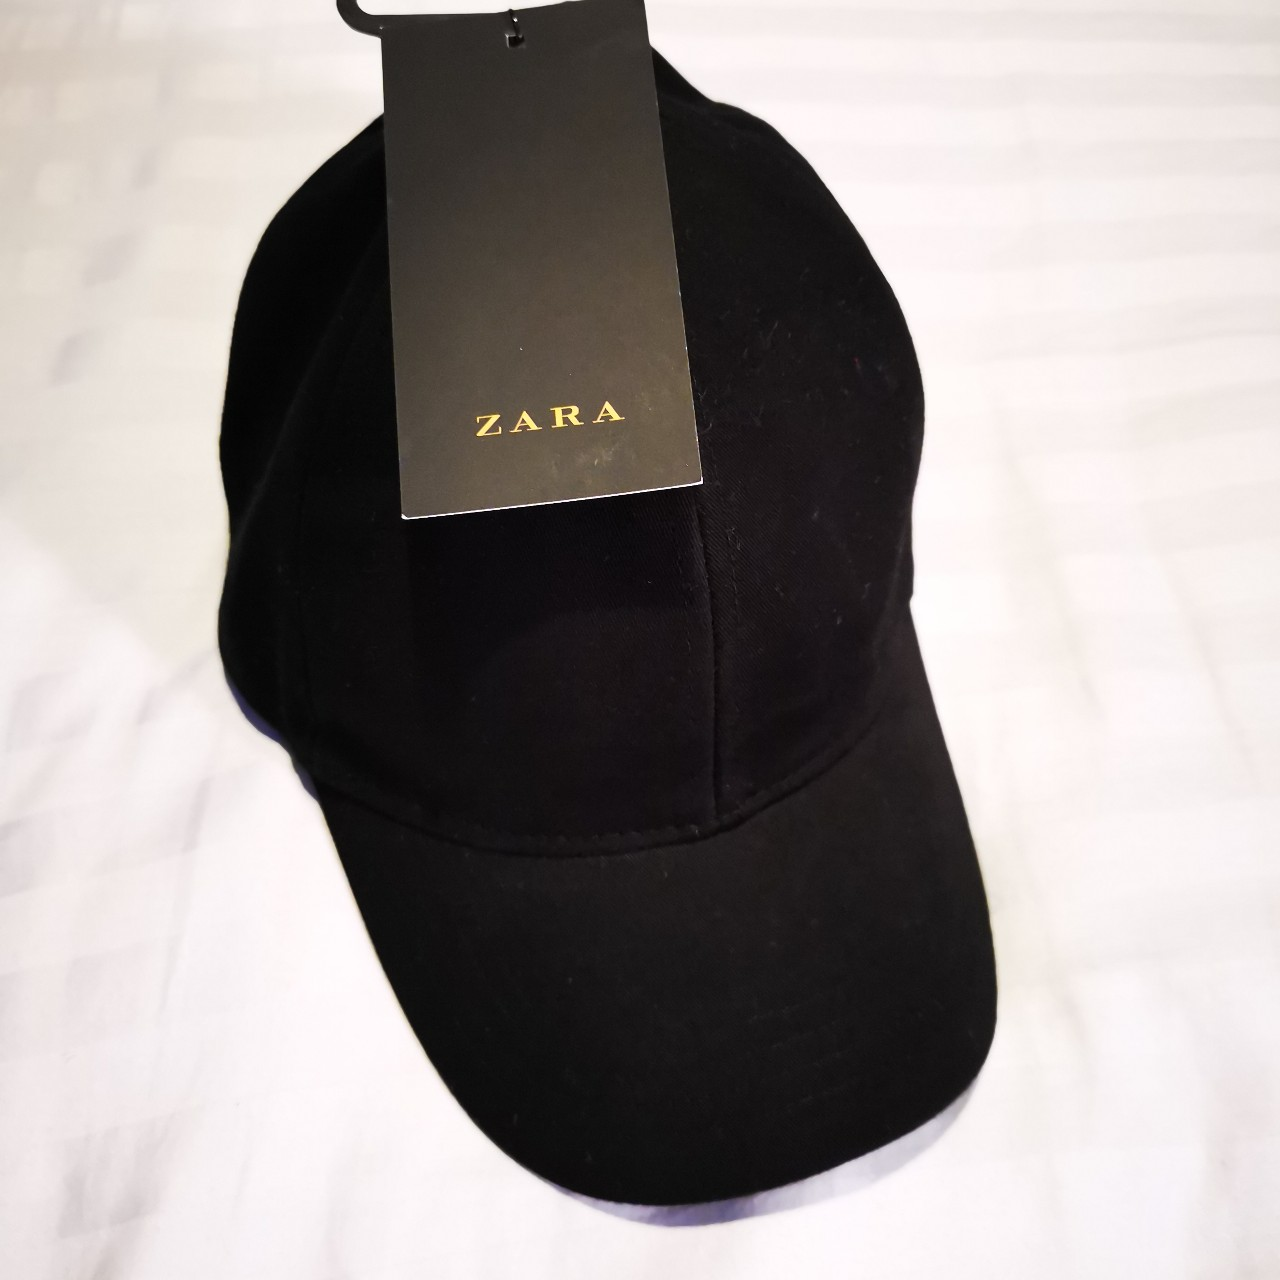 ab0cbe5031 Men's black cap from Zara. New with tags. Size M. - Depop